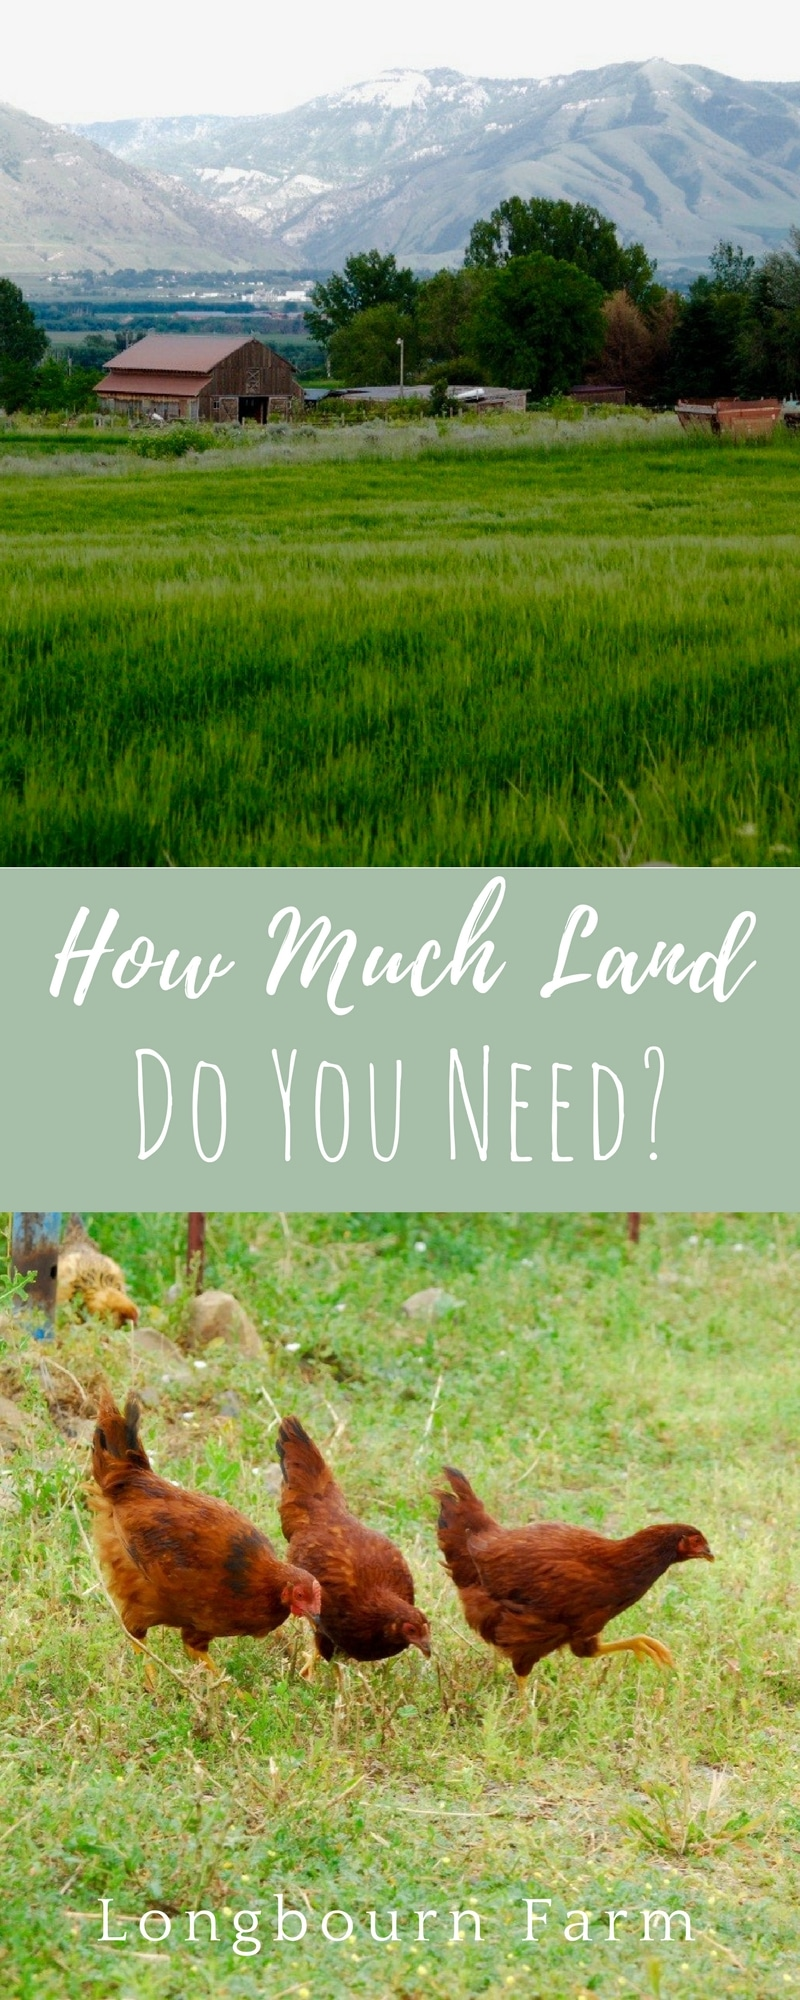 How much land do I need for...A cow?A horse?A goat?A lamb?Chickens?This is a common question people who are interestedin having animals ask. via @longbournfarm